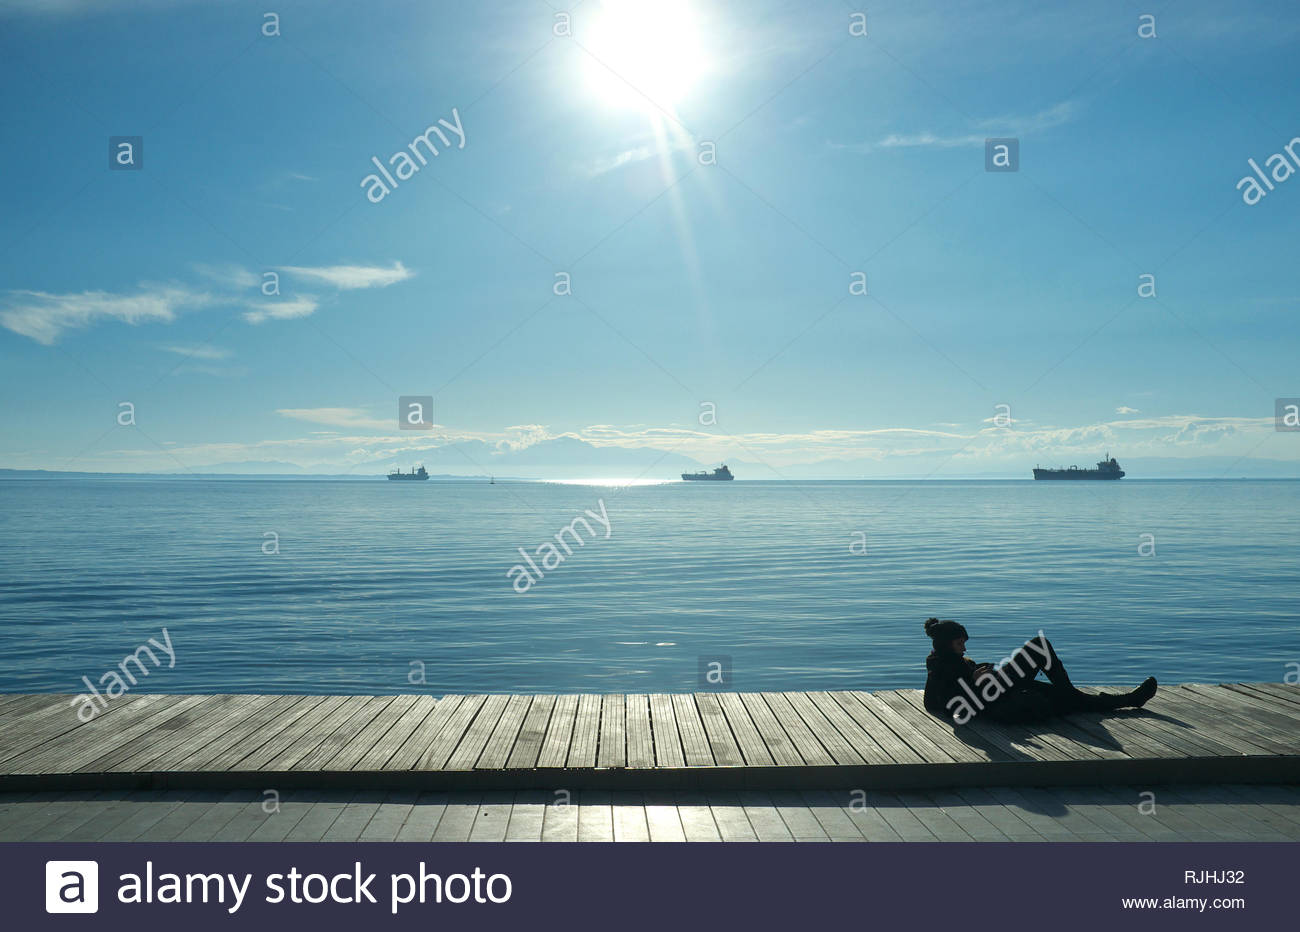 Relaxing on the waterfront in winter sunshine, in the city of Thessaloniki, Central Macedonia, Greece. Stock Photo